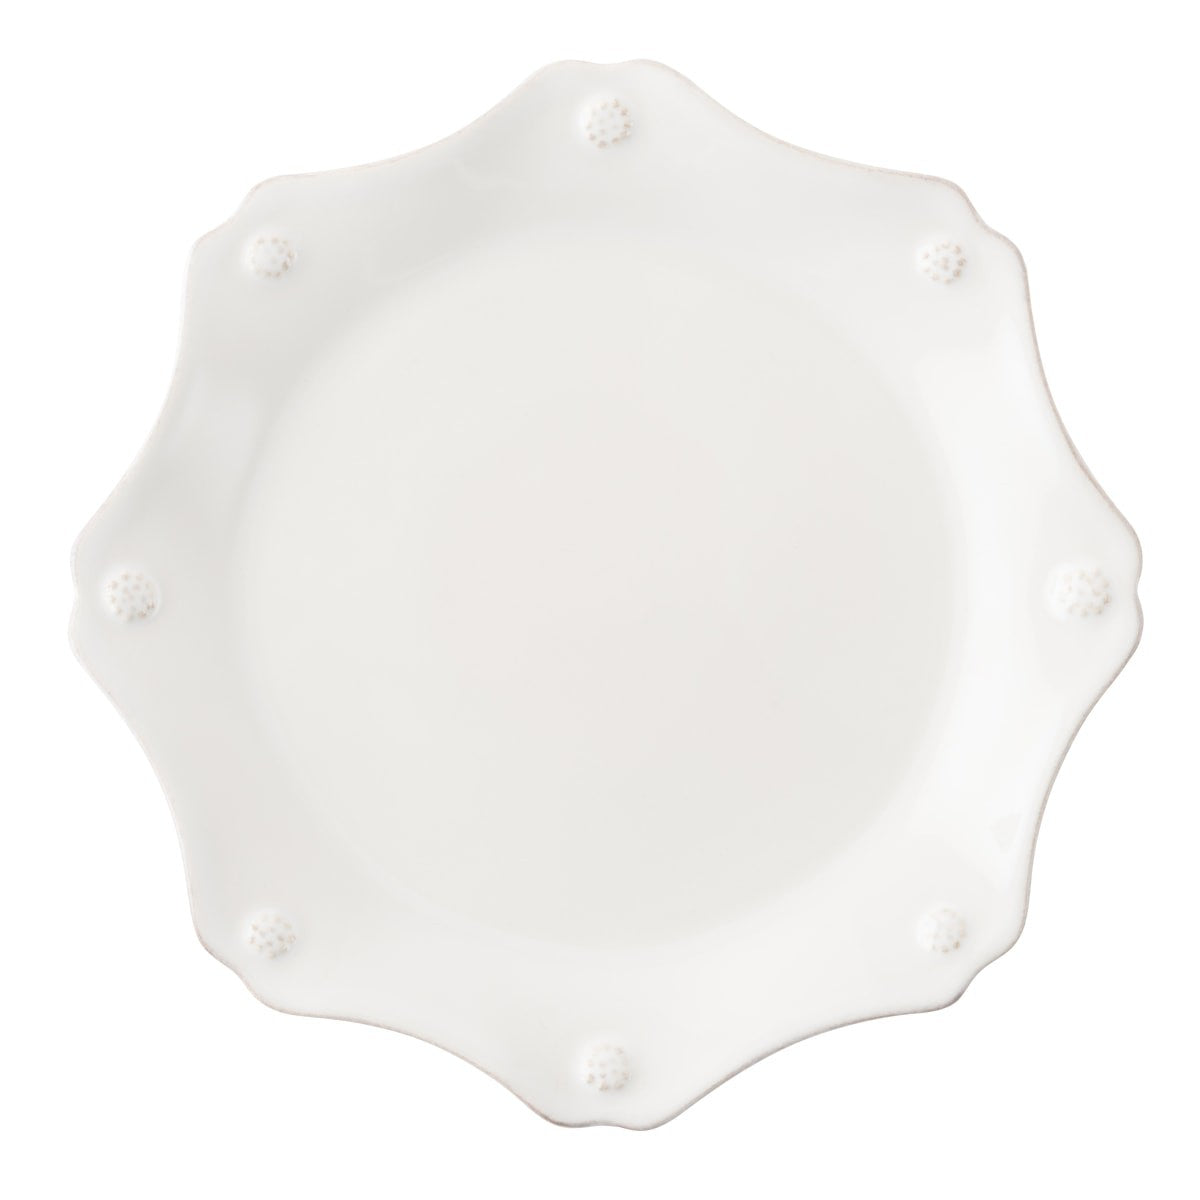 Juliska - Berry & Thread Whitewash Scalloped Dessert/Salad Plate